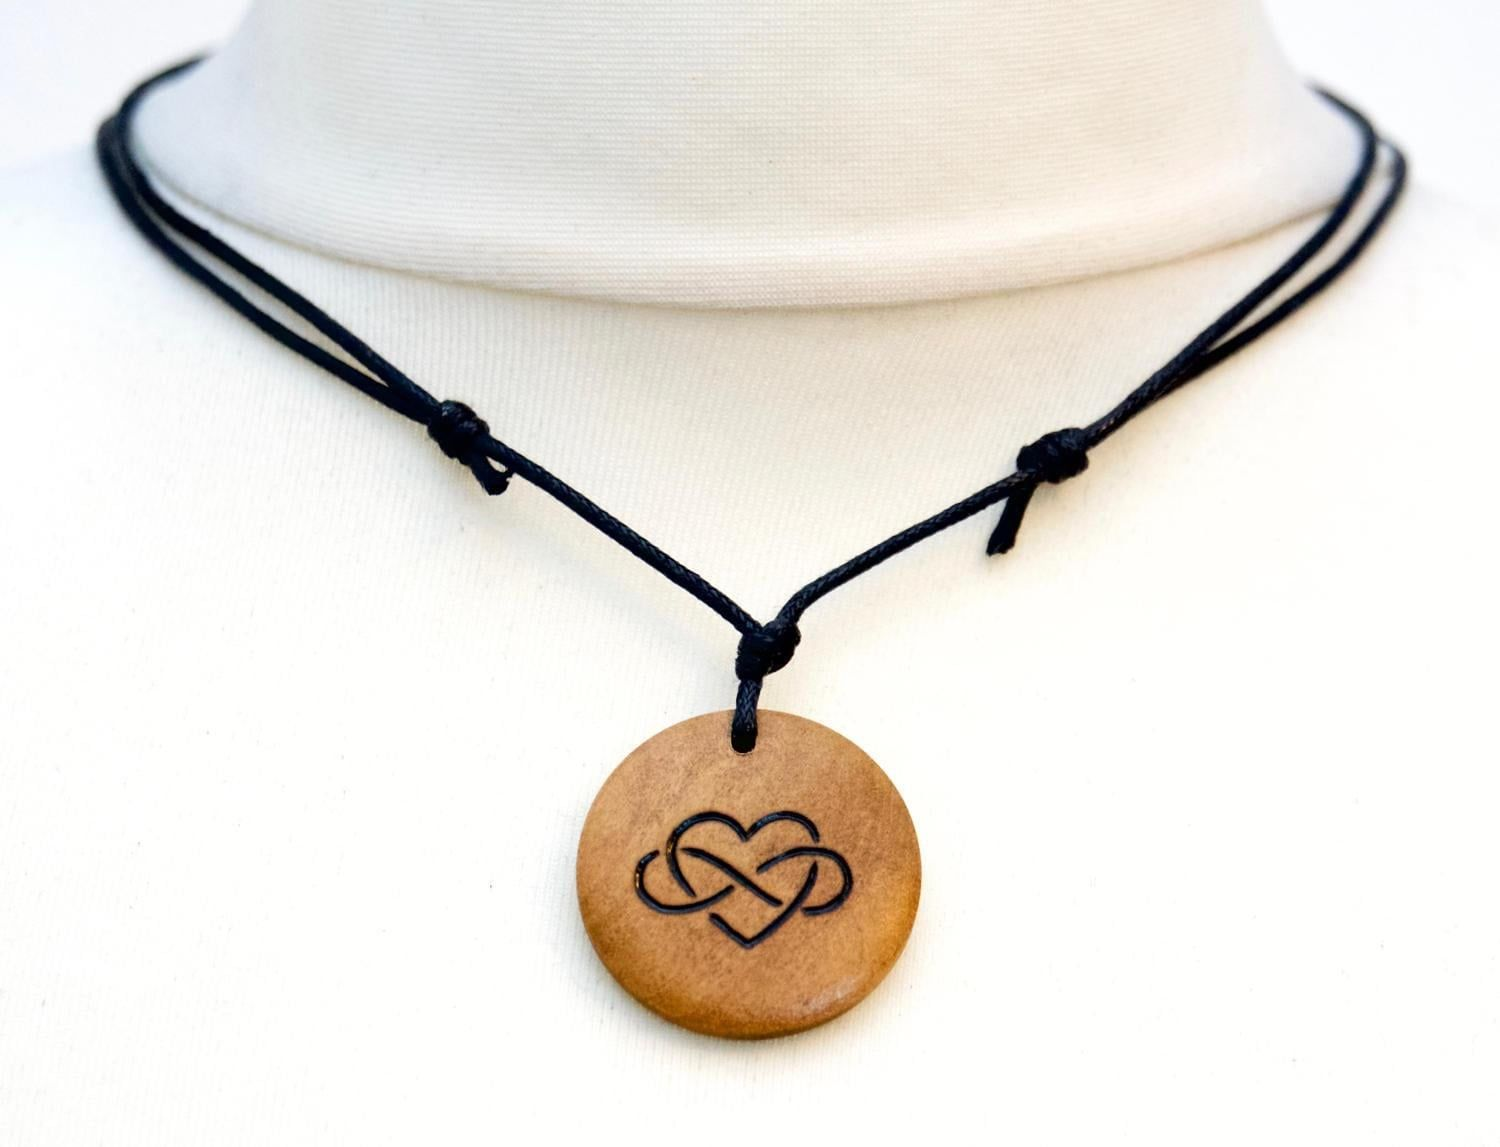 """""""Unique wooden necklace featuring a Polyamory or infinite love symbol. Handmade art jewellery that makes a unique and personal gift idea! Necklace Features: - Freehand wood burning, made to order - Unisex - 3cm diameter, 1.1/4\"""" - Adjustable slip knots on a black cotton cord: Can be worn as a choker to a low hanging pendant - No extra postage cost on multiple items from my shop Would you like to choose your own design? Check out my custom design listing or send me a message with your ideas!"""""""